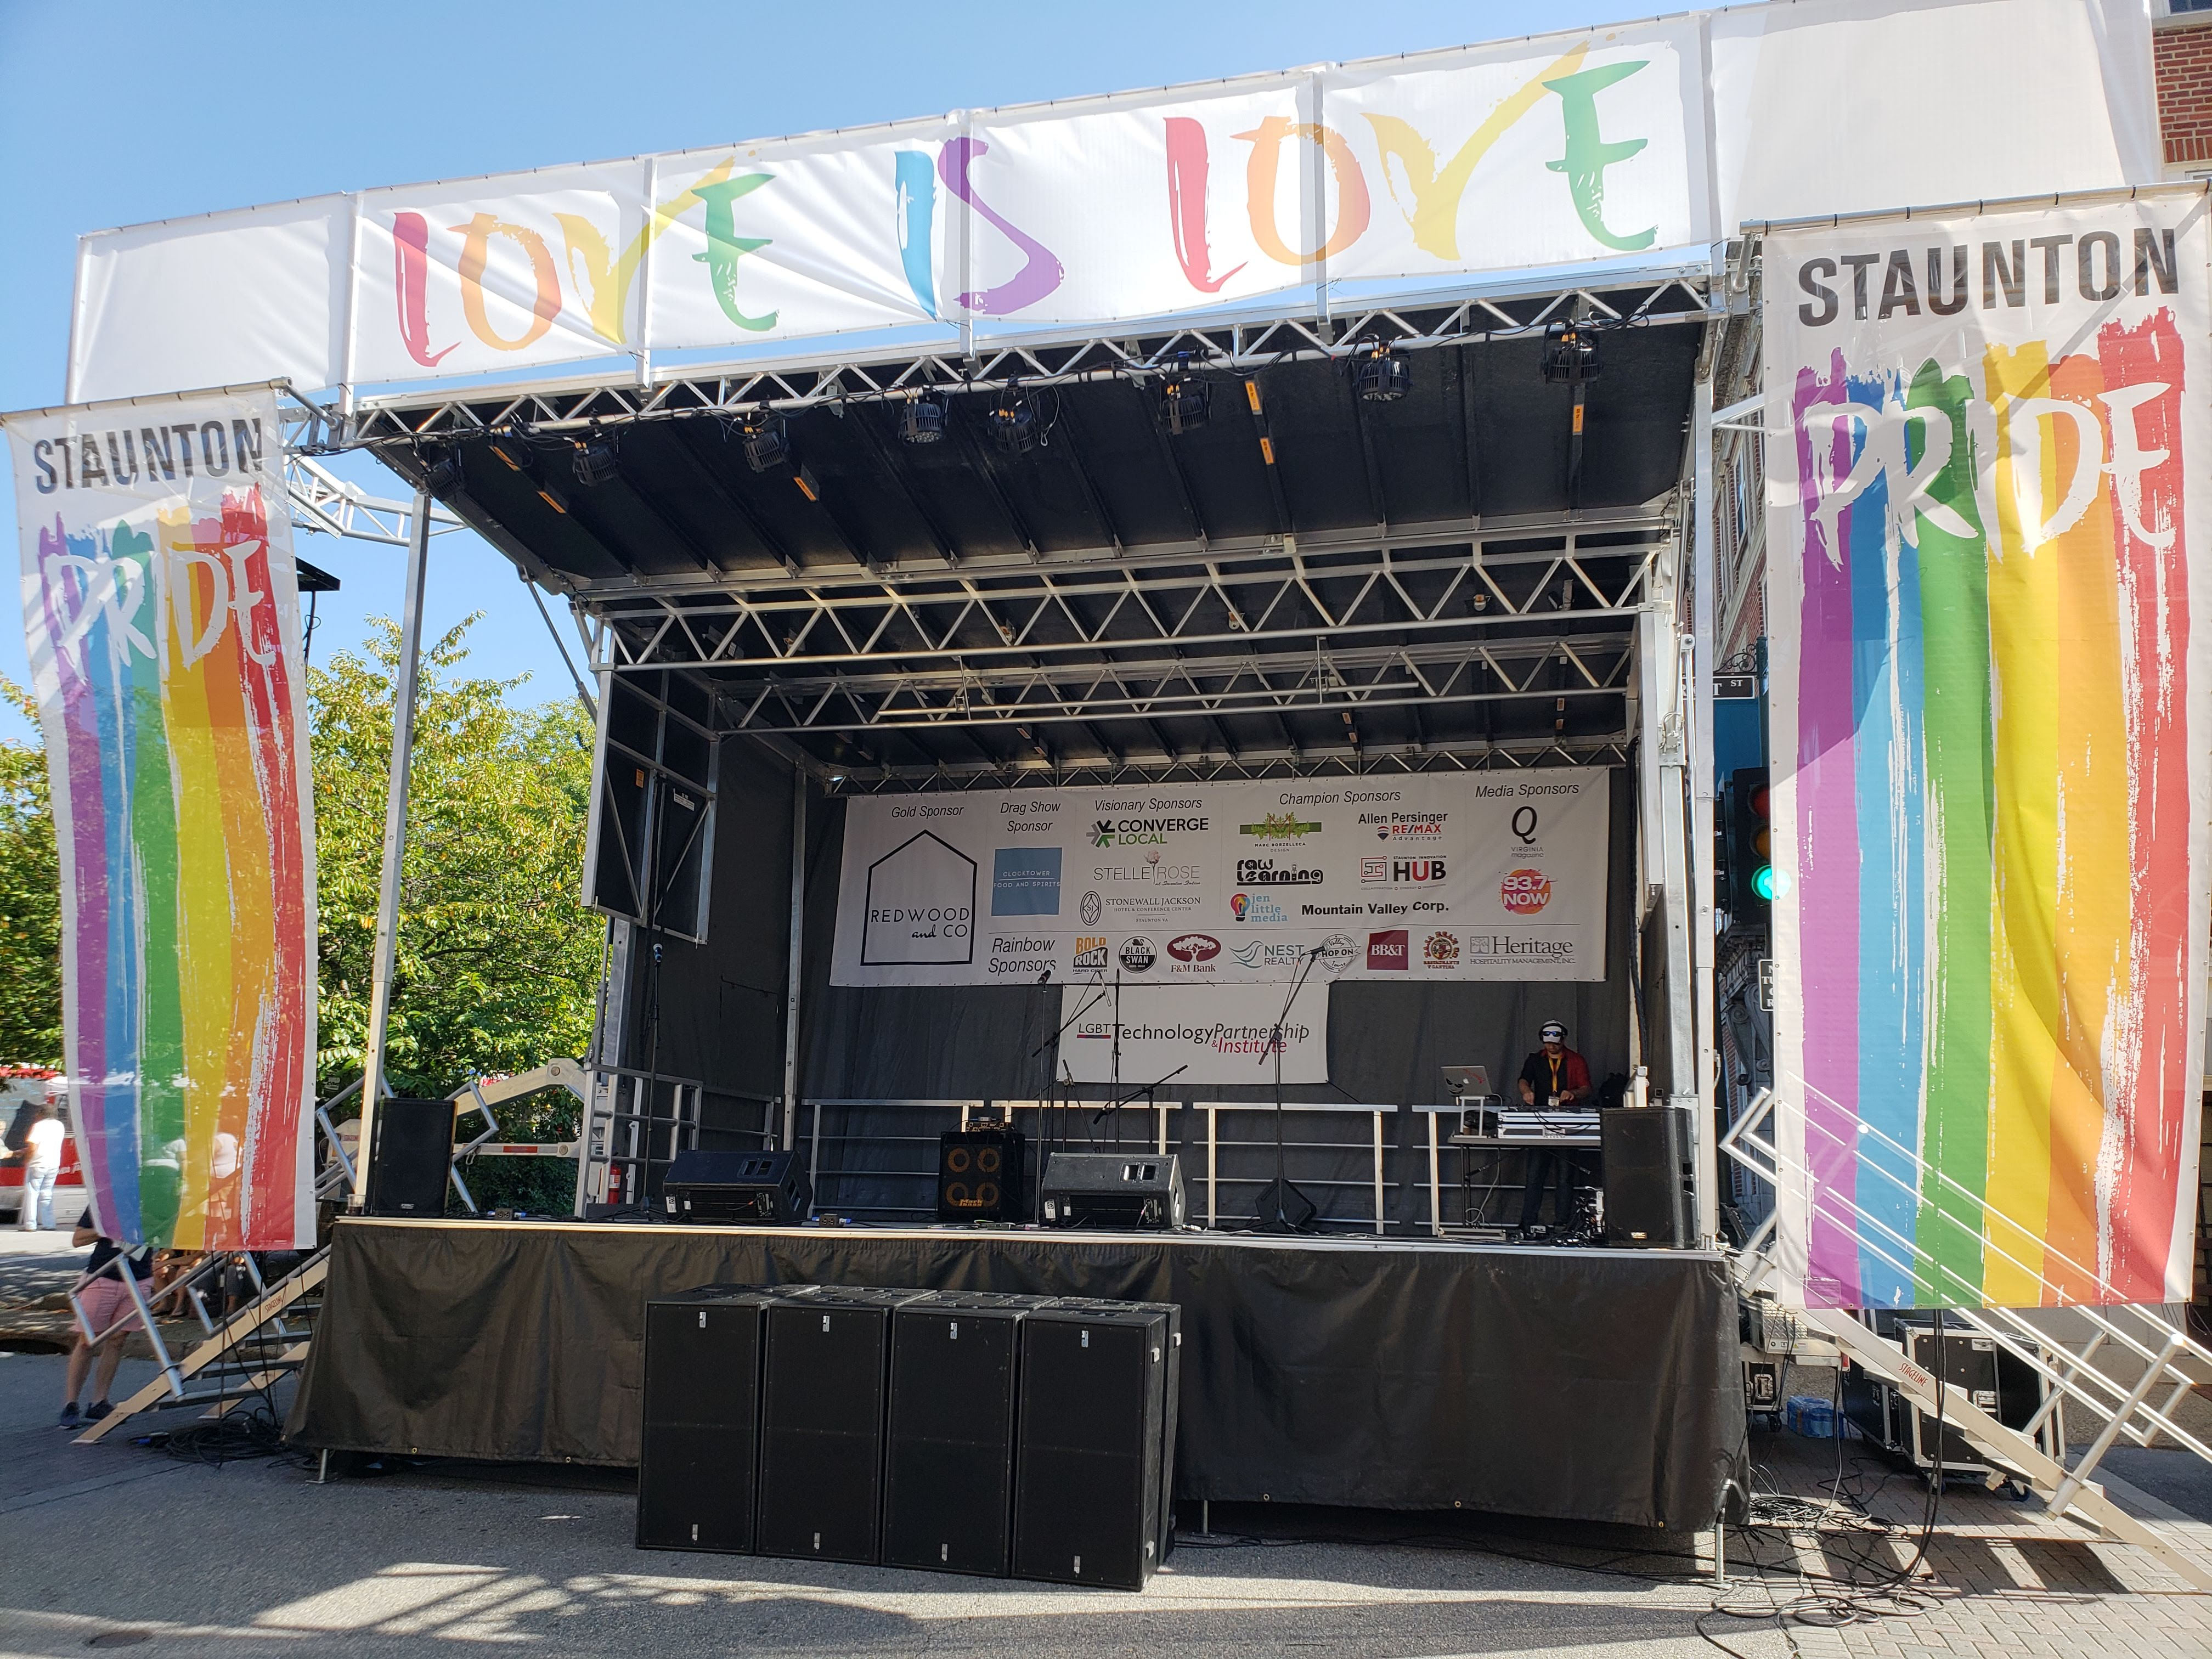 An SL100 mobile stage with full banner kit is set up for Staunton Pride Festival